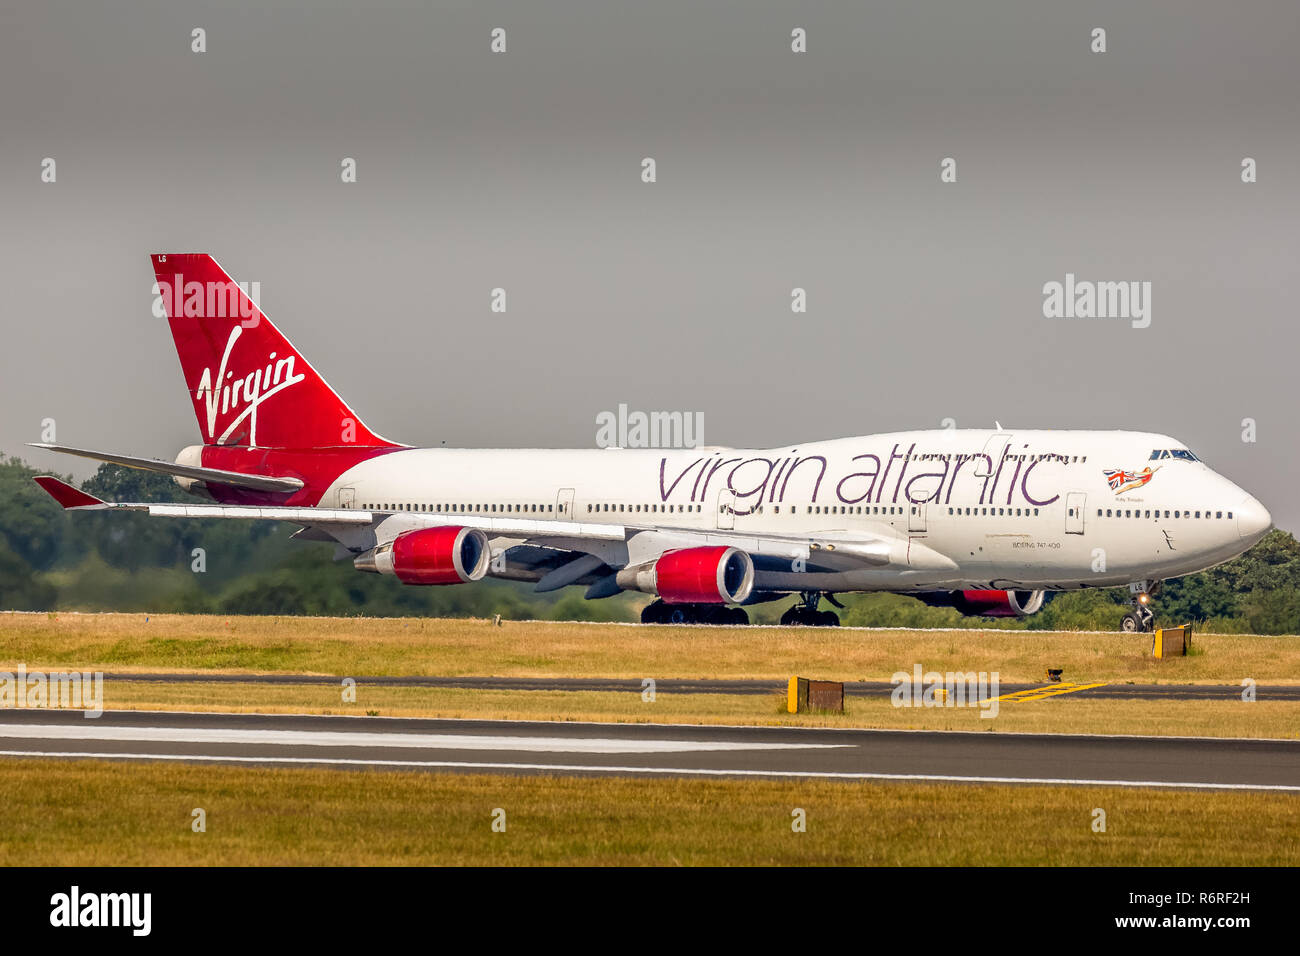 A Virgin Atlantic Airways Boeing 747-400, registration G-VXLG, taxying back to then terminal at Manchester Airport in England after landing. - Stock Image